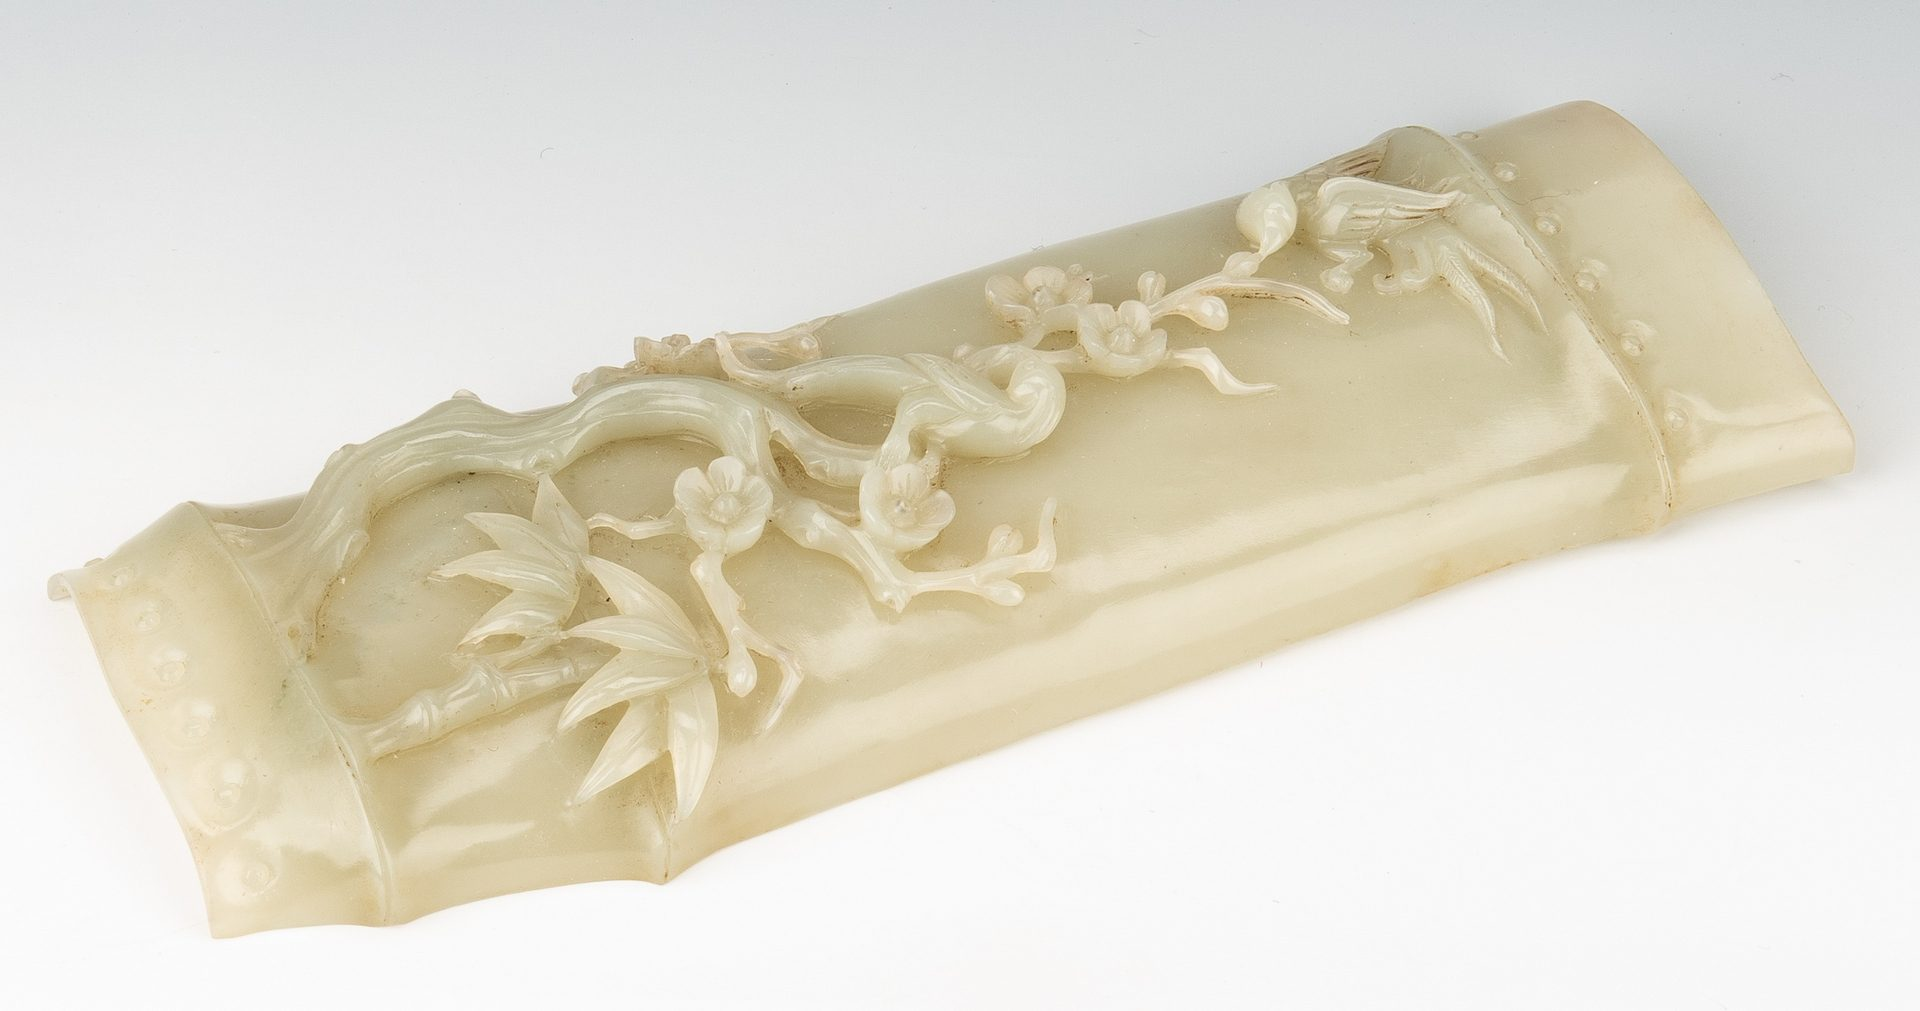 Lot 2: Chinese Scholar Celadon Jade Arm Rest